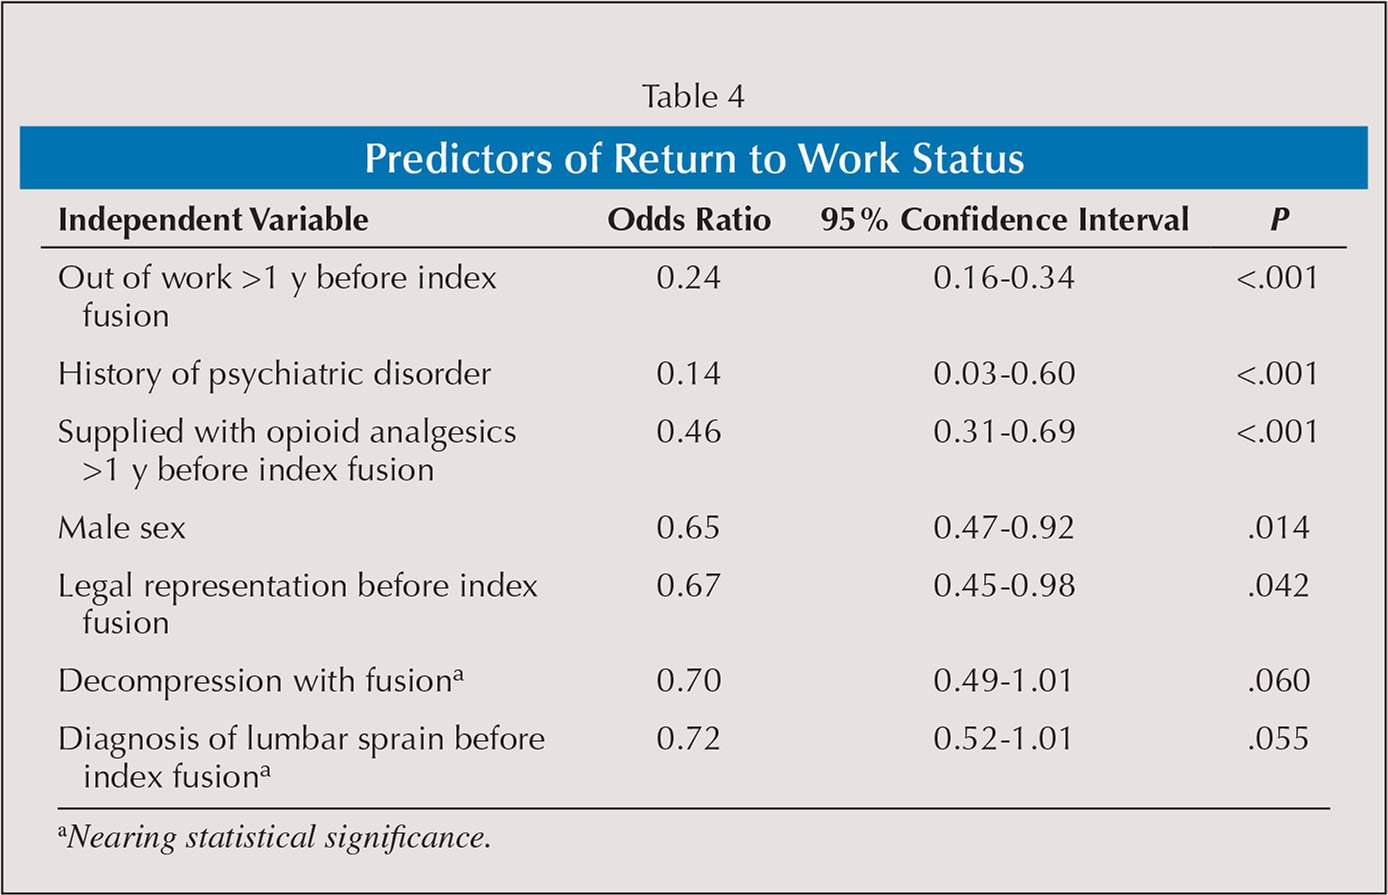 Predictors of Return to Work Status